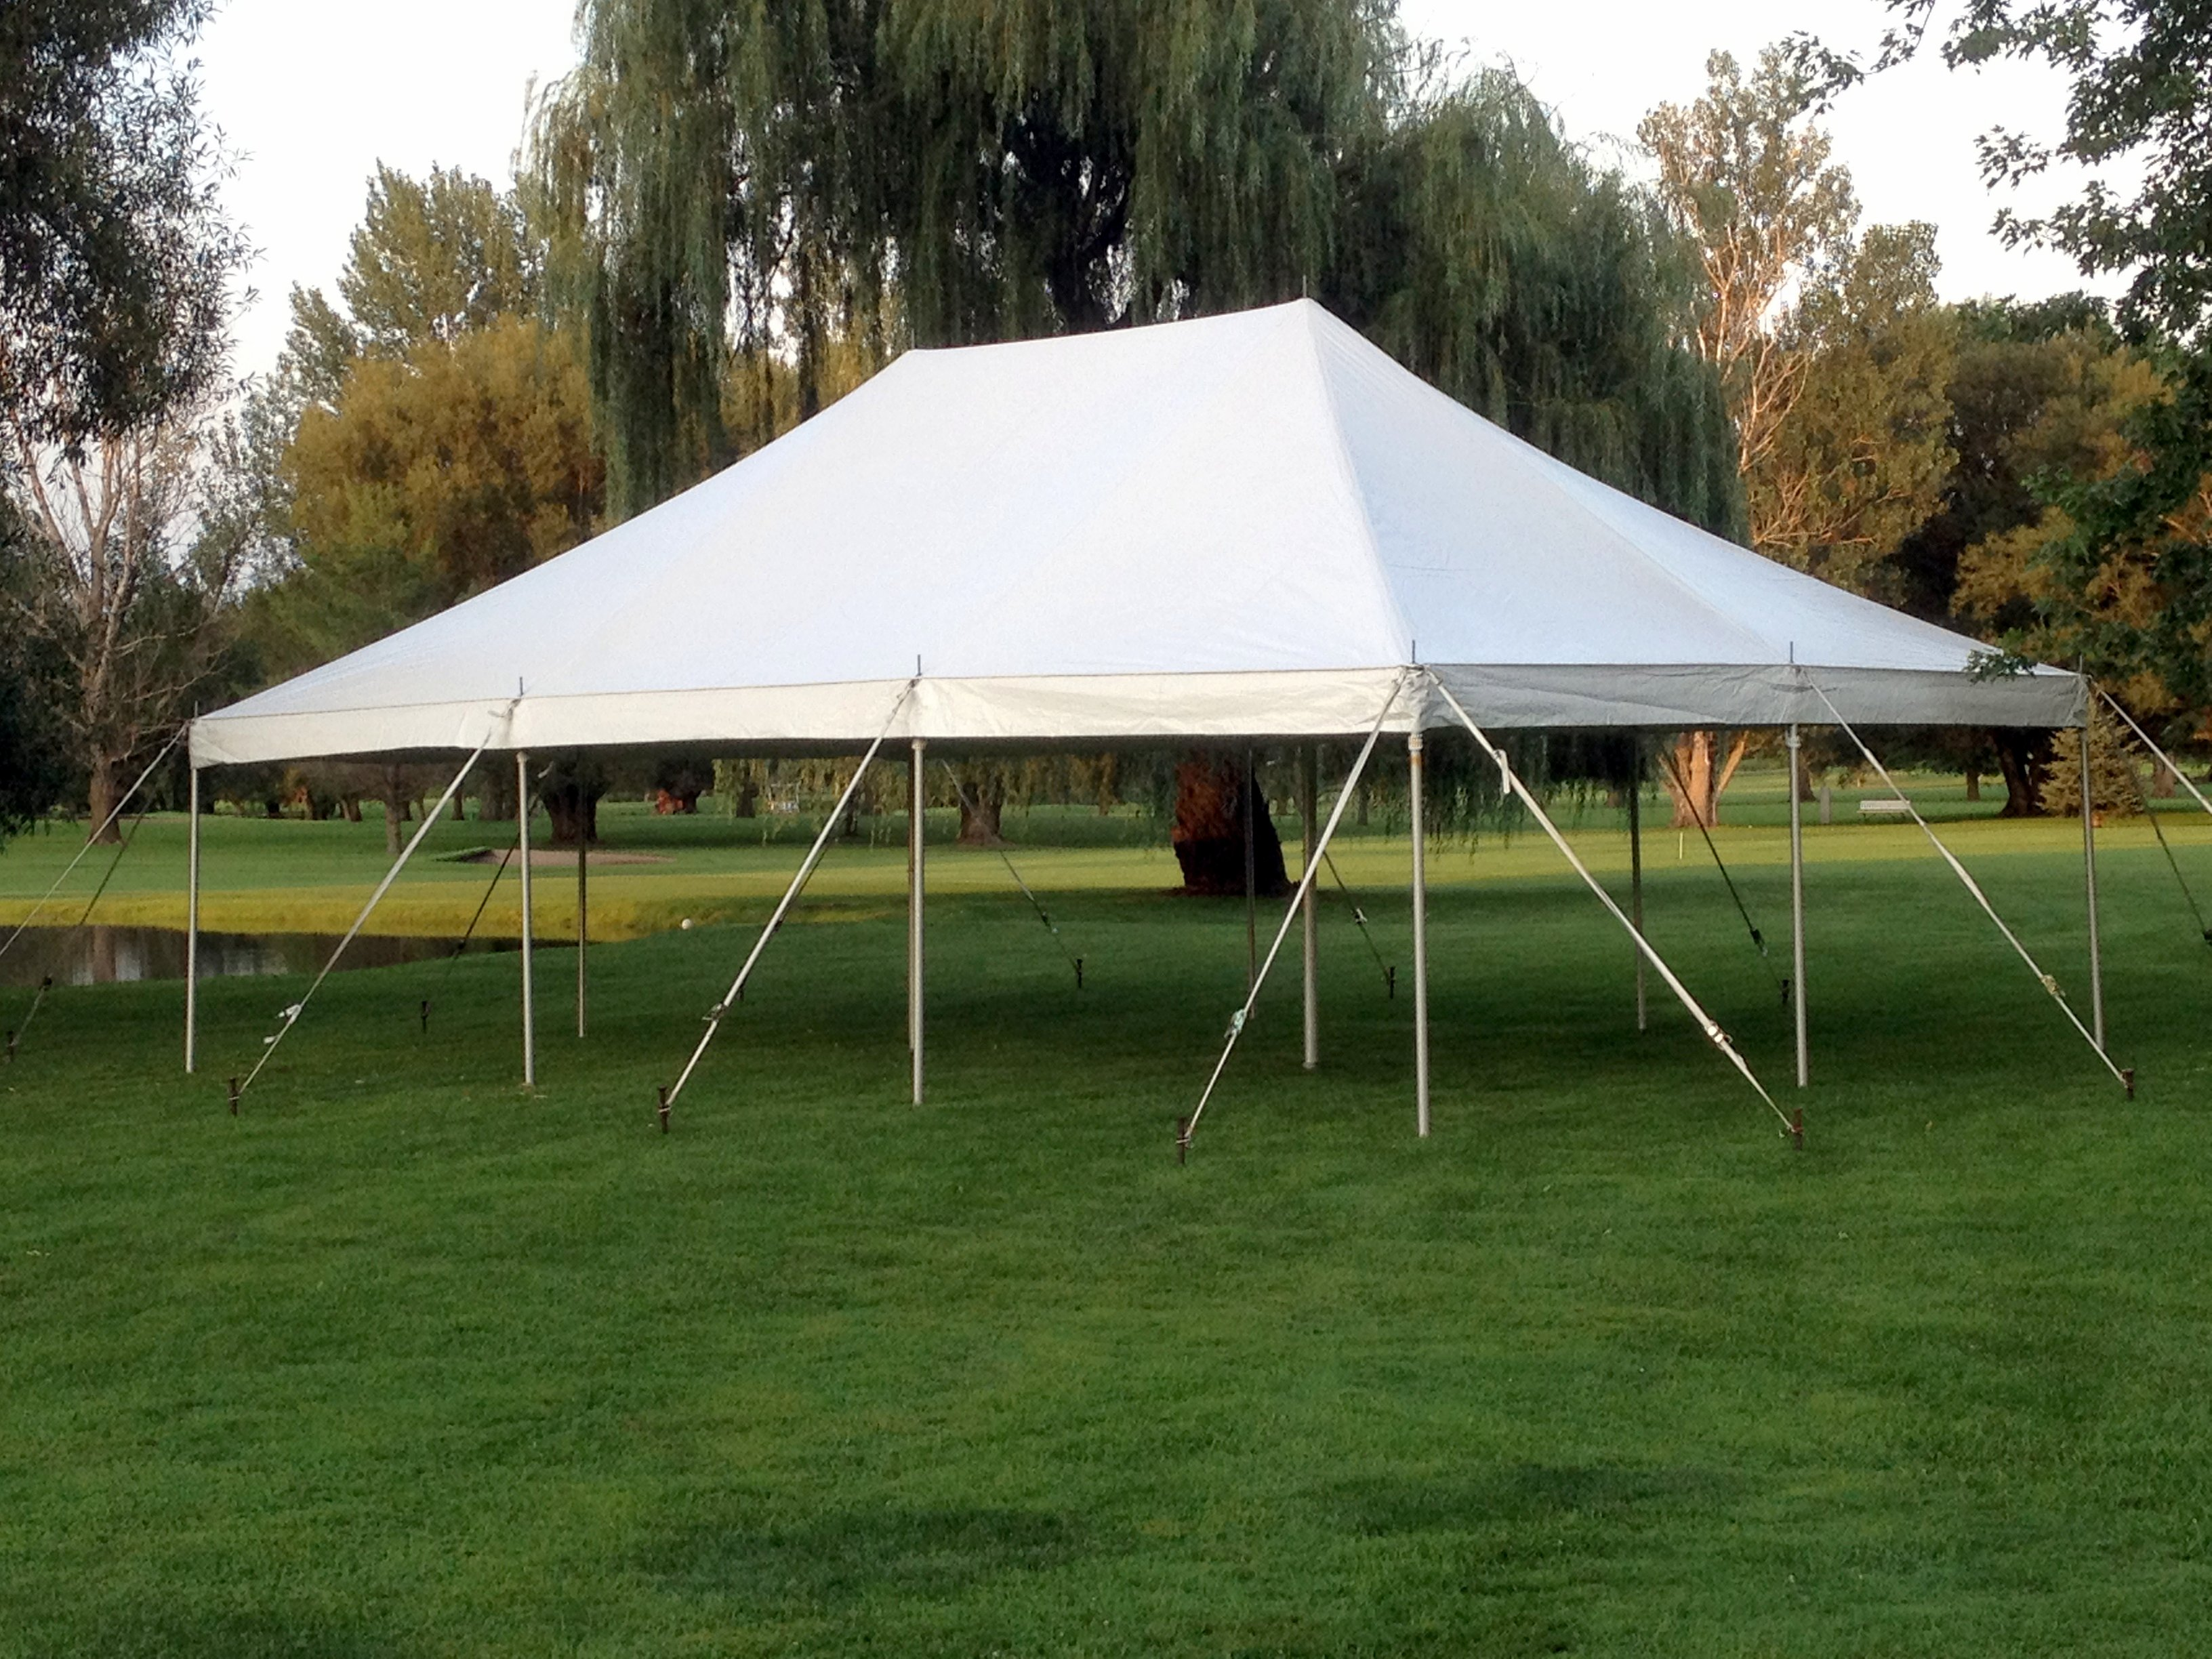 20u2032 x 30u2032 Pole Tent & Pole Tents » Product categories » Rainy Day Party Rentals